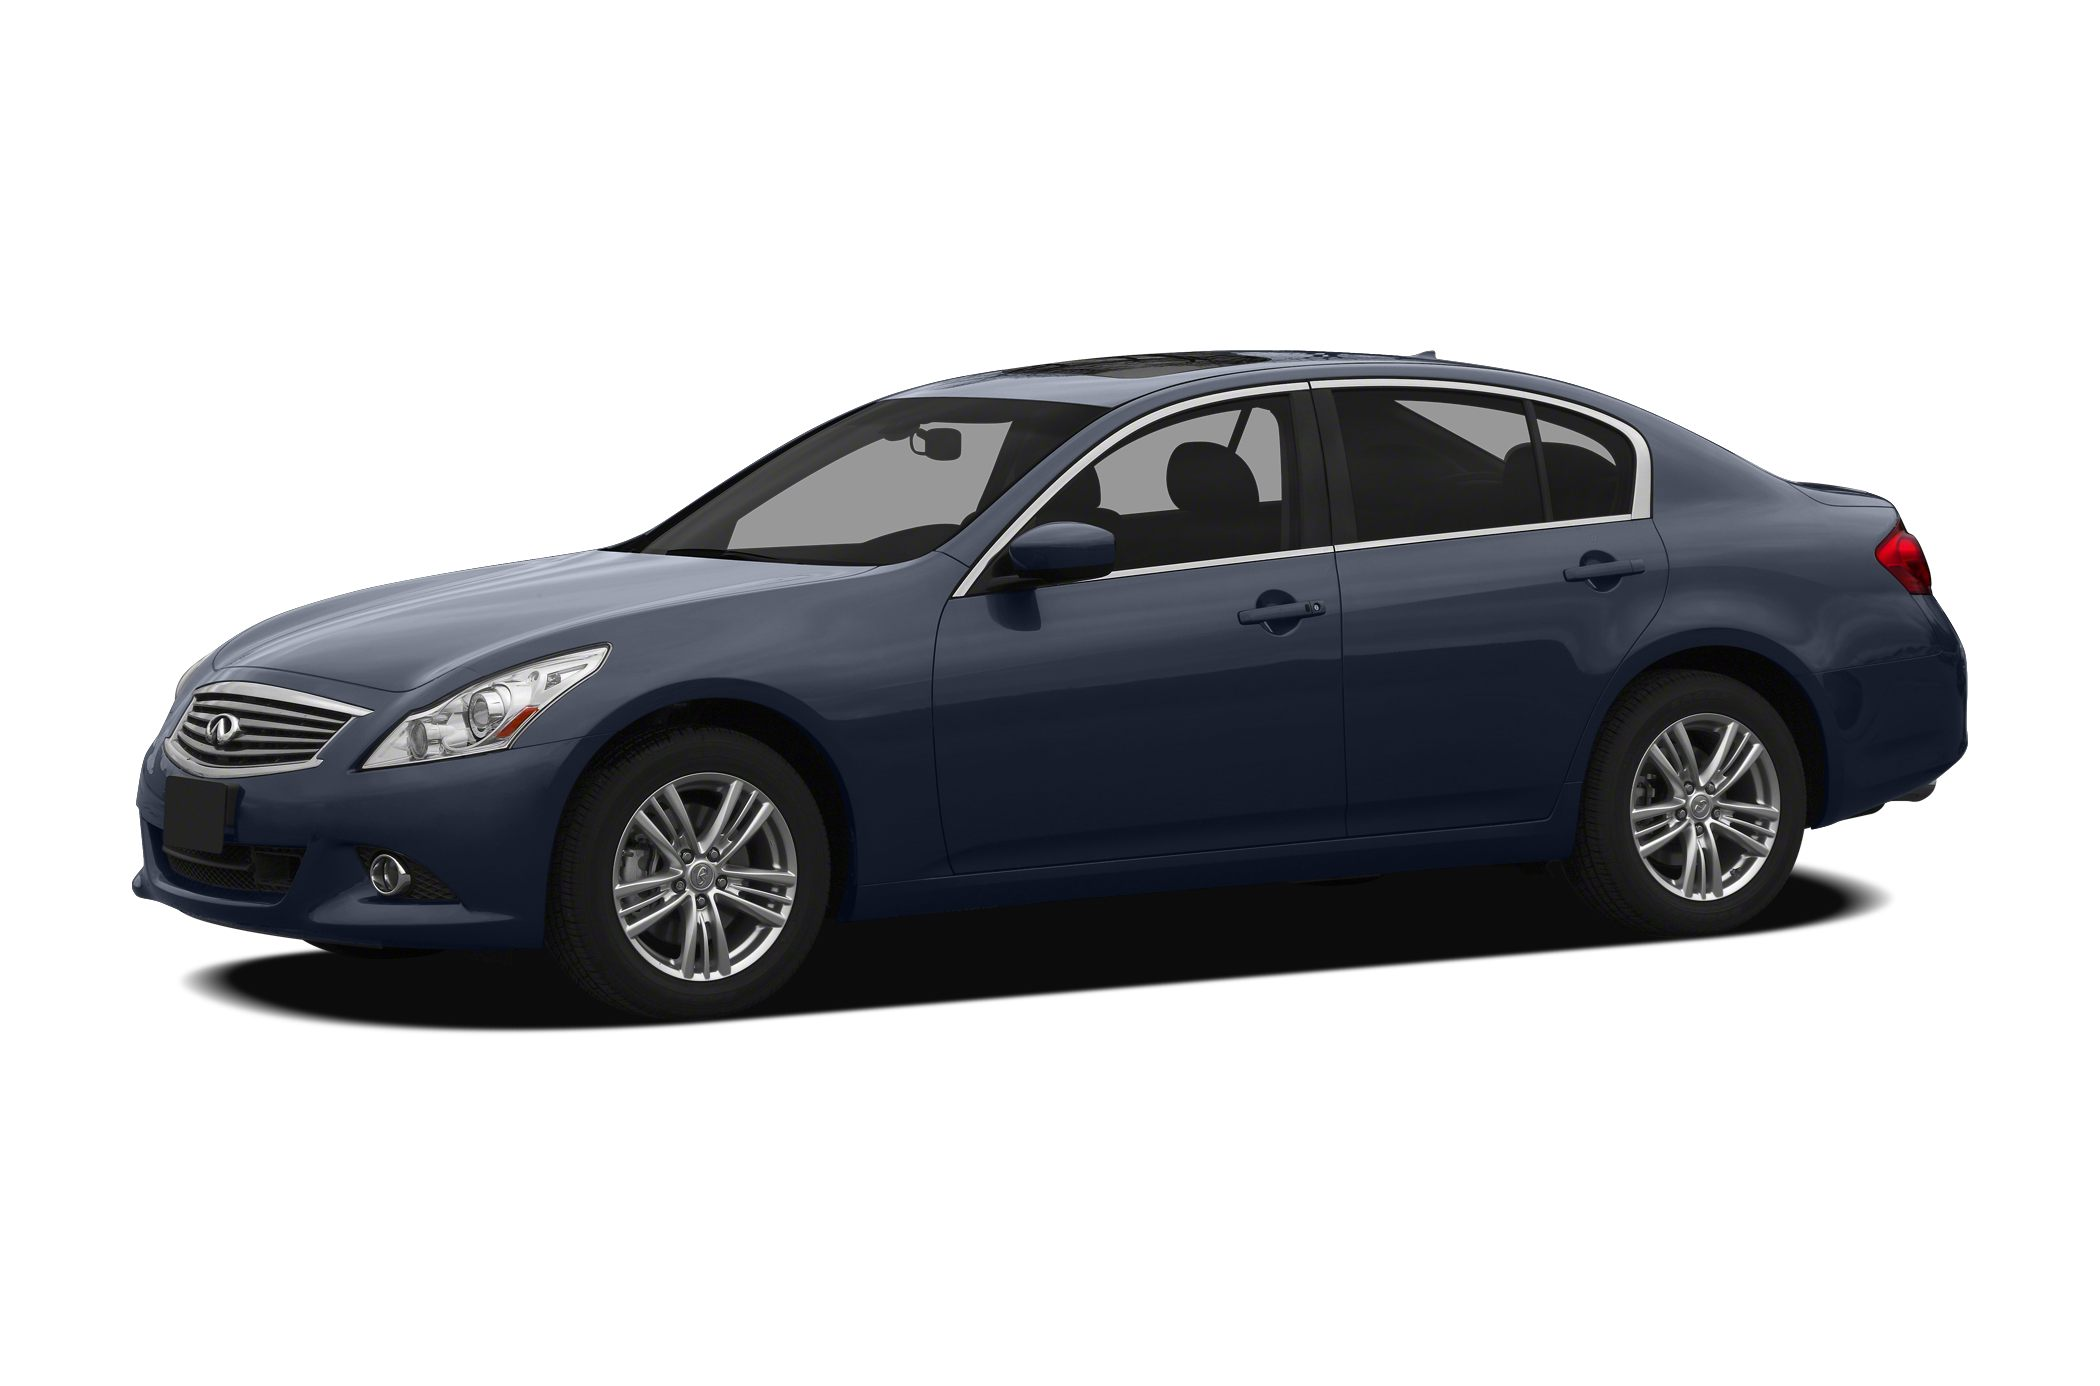 2012 Infiniti G37 Journey Sedan for sale in Sacramento for $25,998 with 25,596 miles.